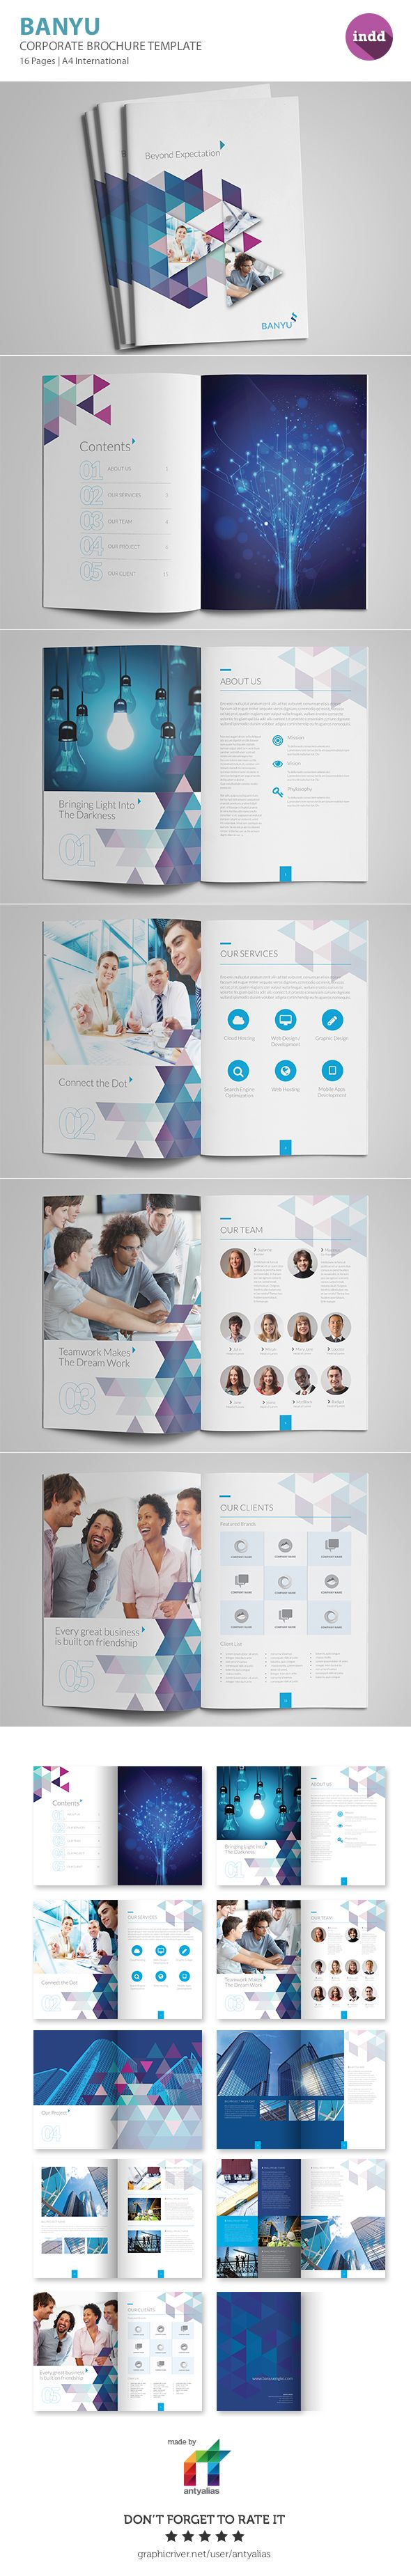 BANYU – Professional corporate brochure templates is perfectly match for any business related to services or project based. Triangle shape used to represent current trend shape and look forward. This template comes with 16 pages, A4 International.